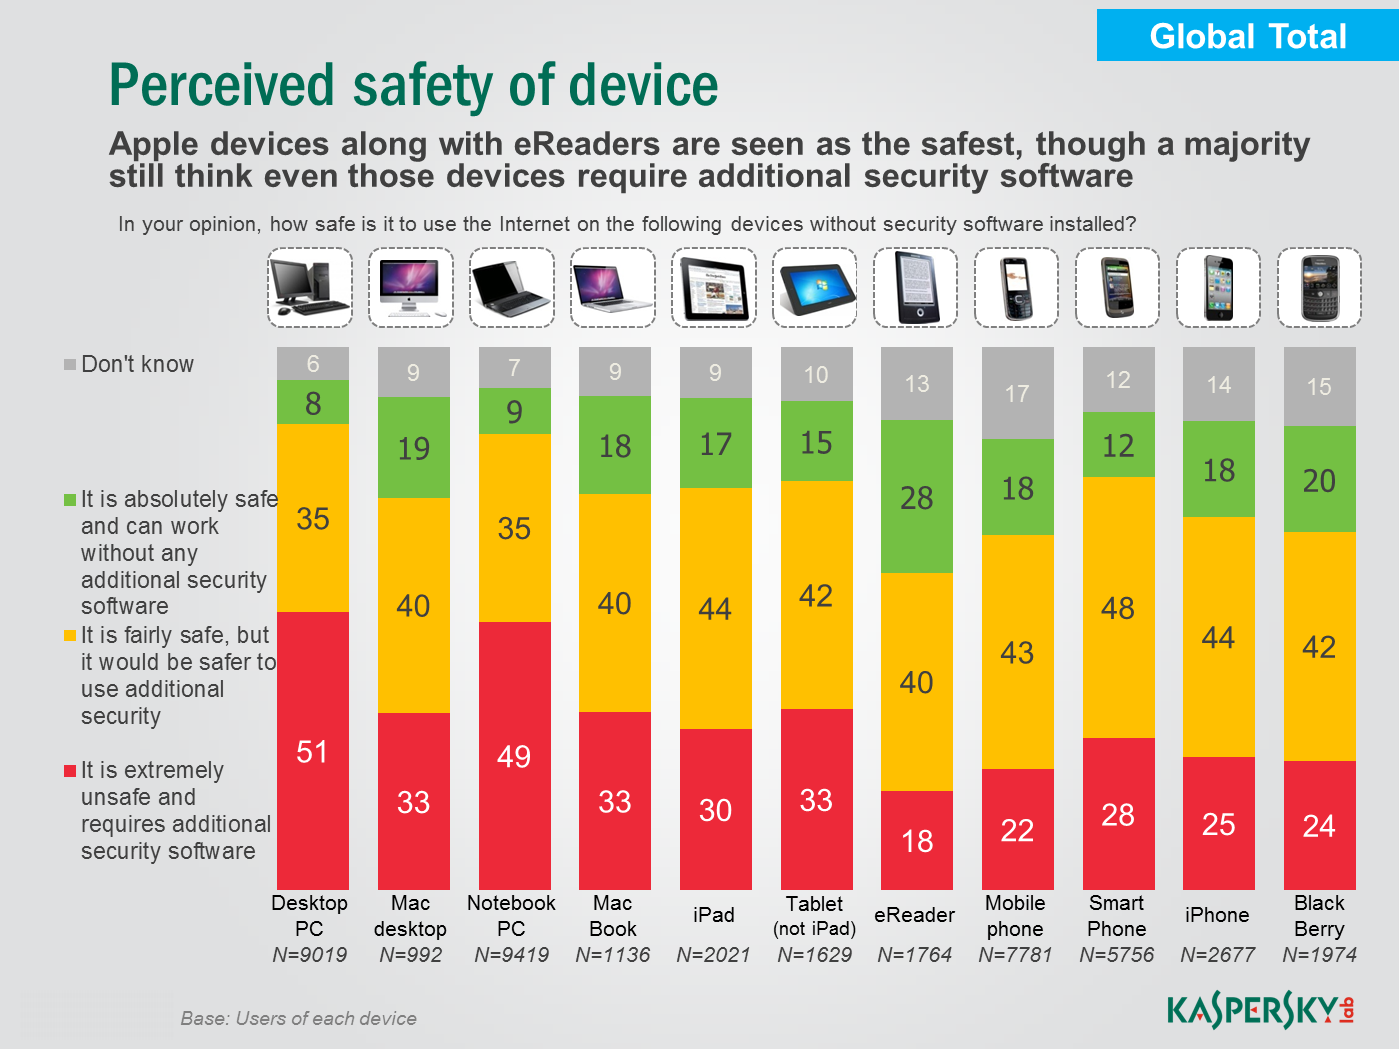 Perception of security Approximately half of the Windows desktop and laptop users surveyed believe it is unsafe to use their computers without additional security software; only 8 and 9% of users